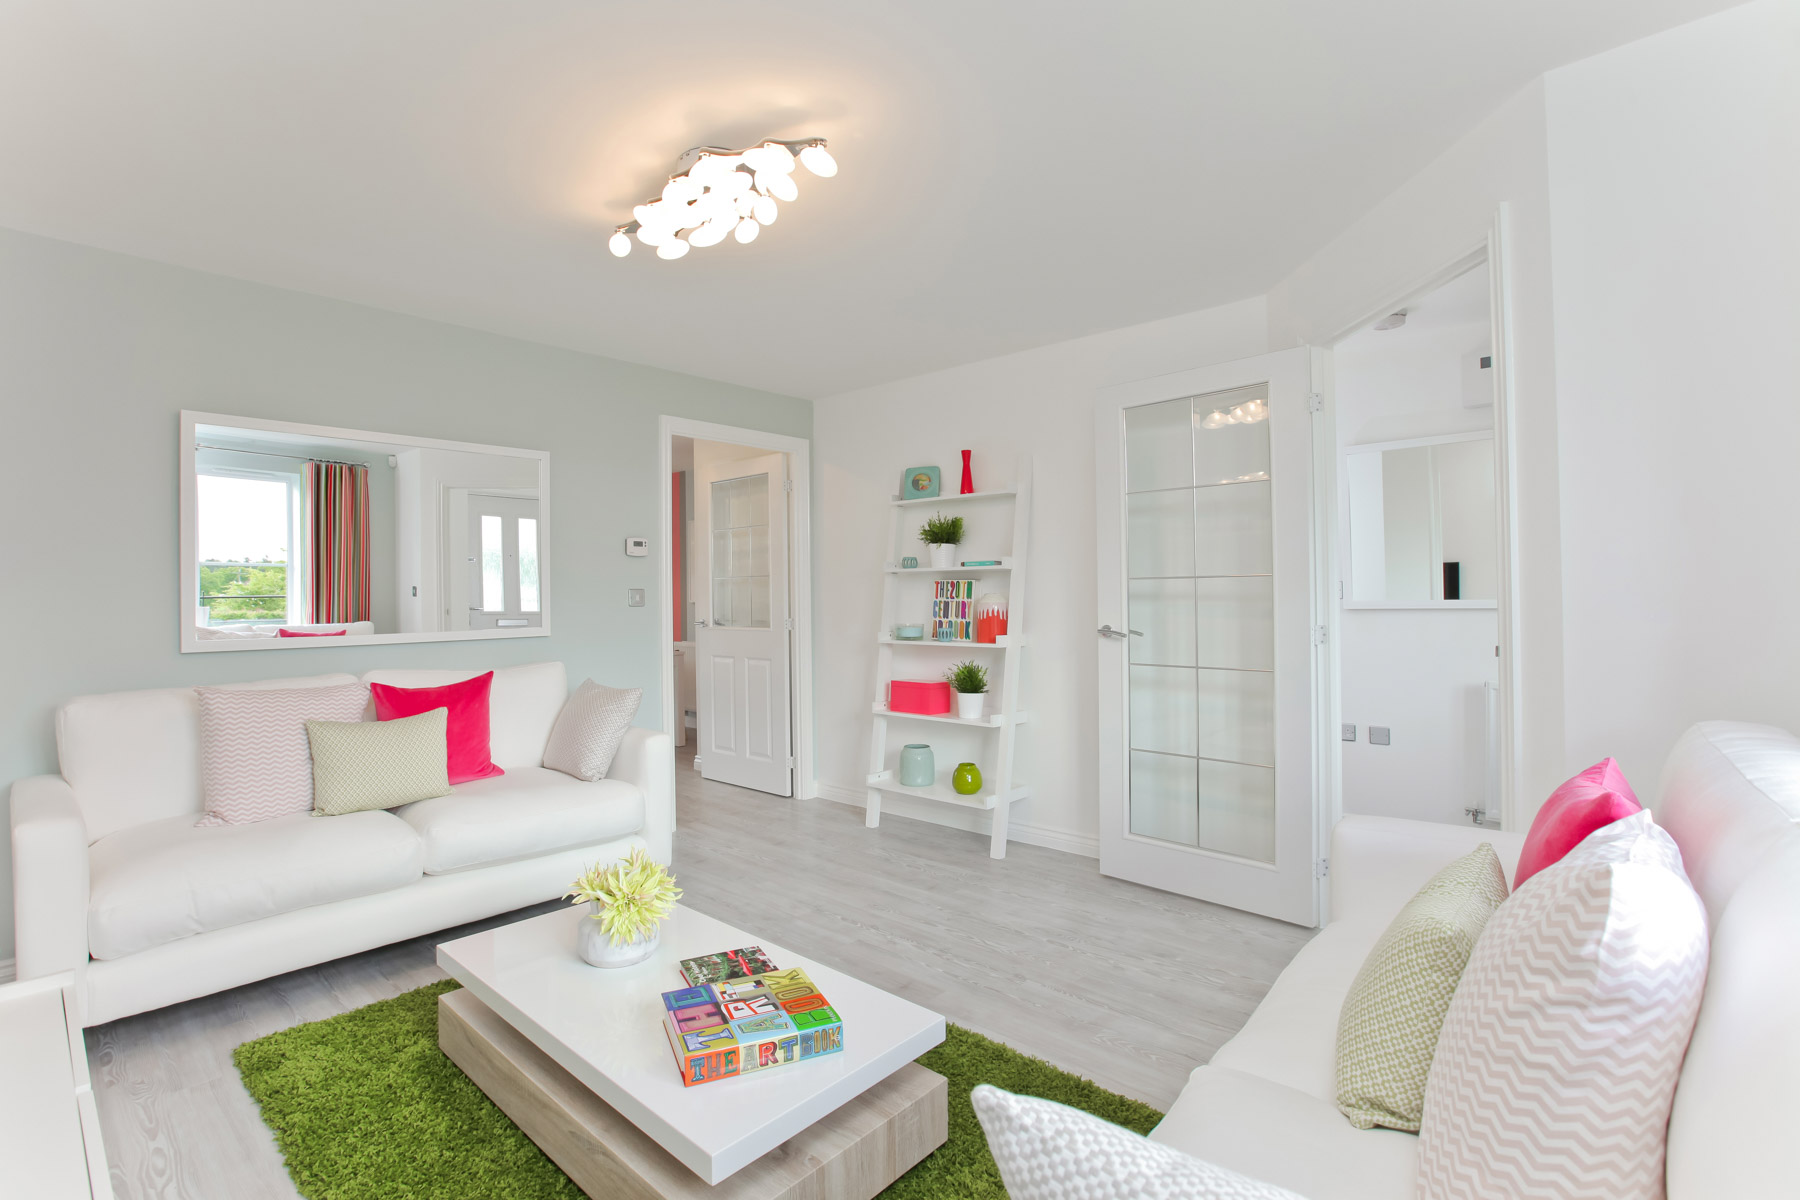 Kings Copse - New Homes in Kingsway Village | Taylor Wimpey